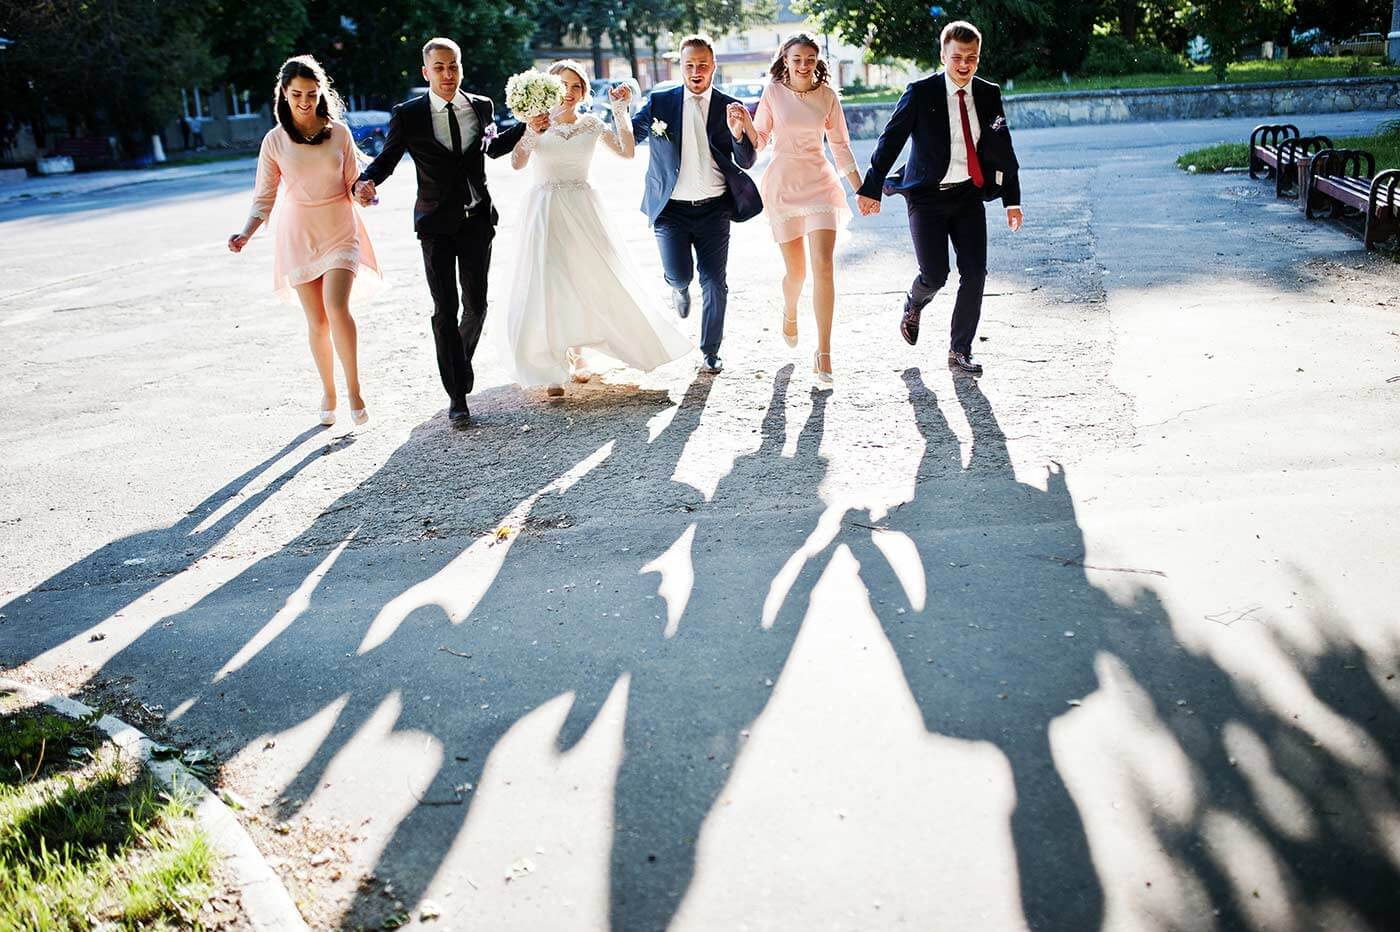 1632477580 281 The 10 worst mistakes as a wedding guest and how - The 10 worst mistakes as a wedding guest and how to avoid them